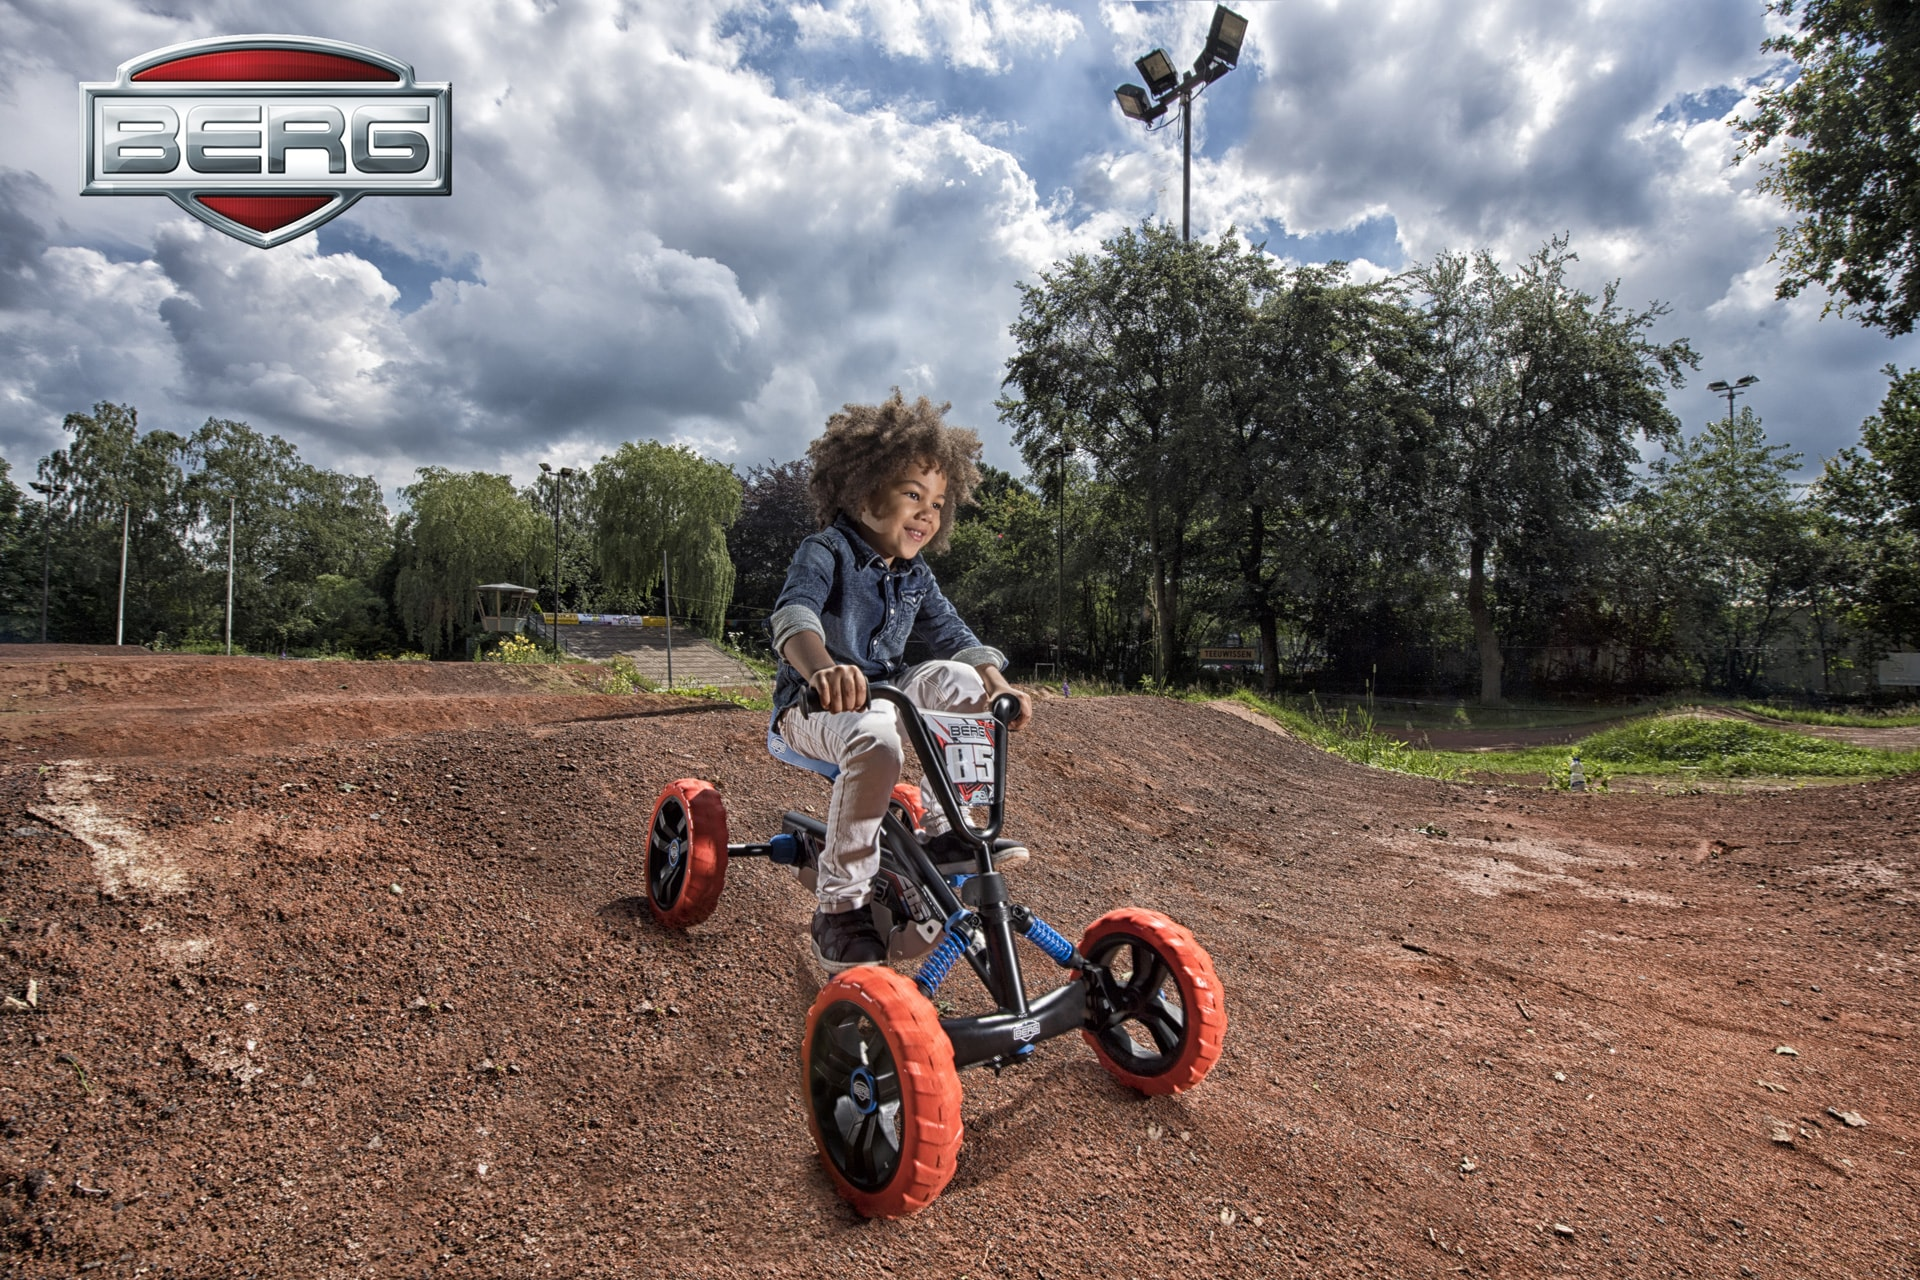 Vroom Pedal Go-Karts Buzzy Nitro for 2-5 Year Old